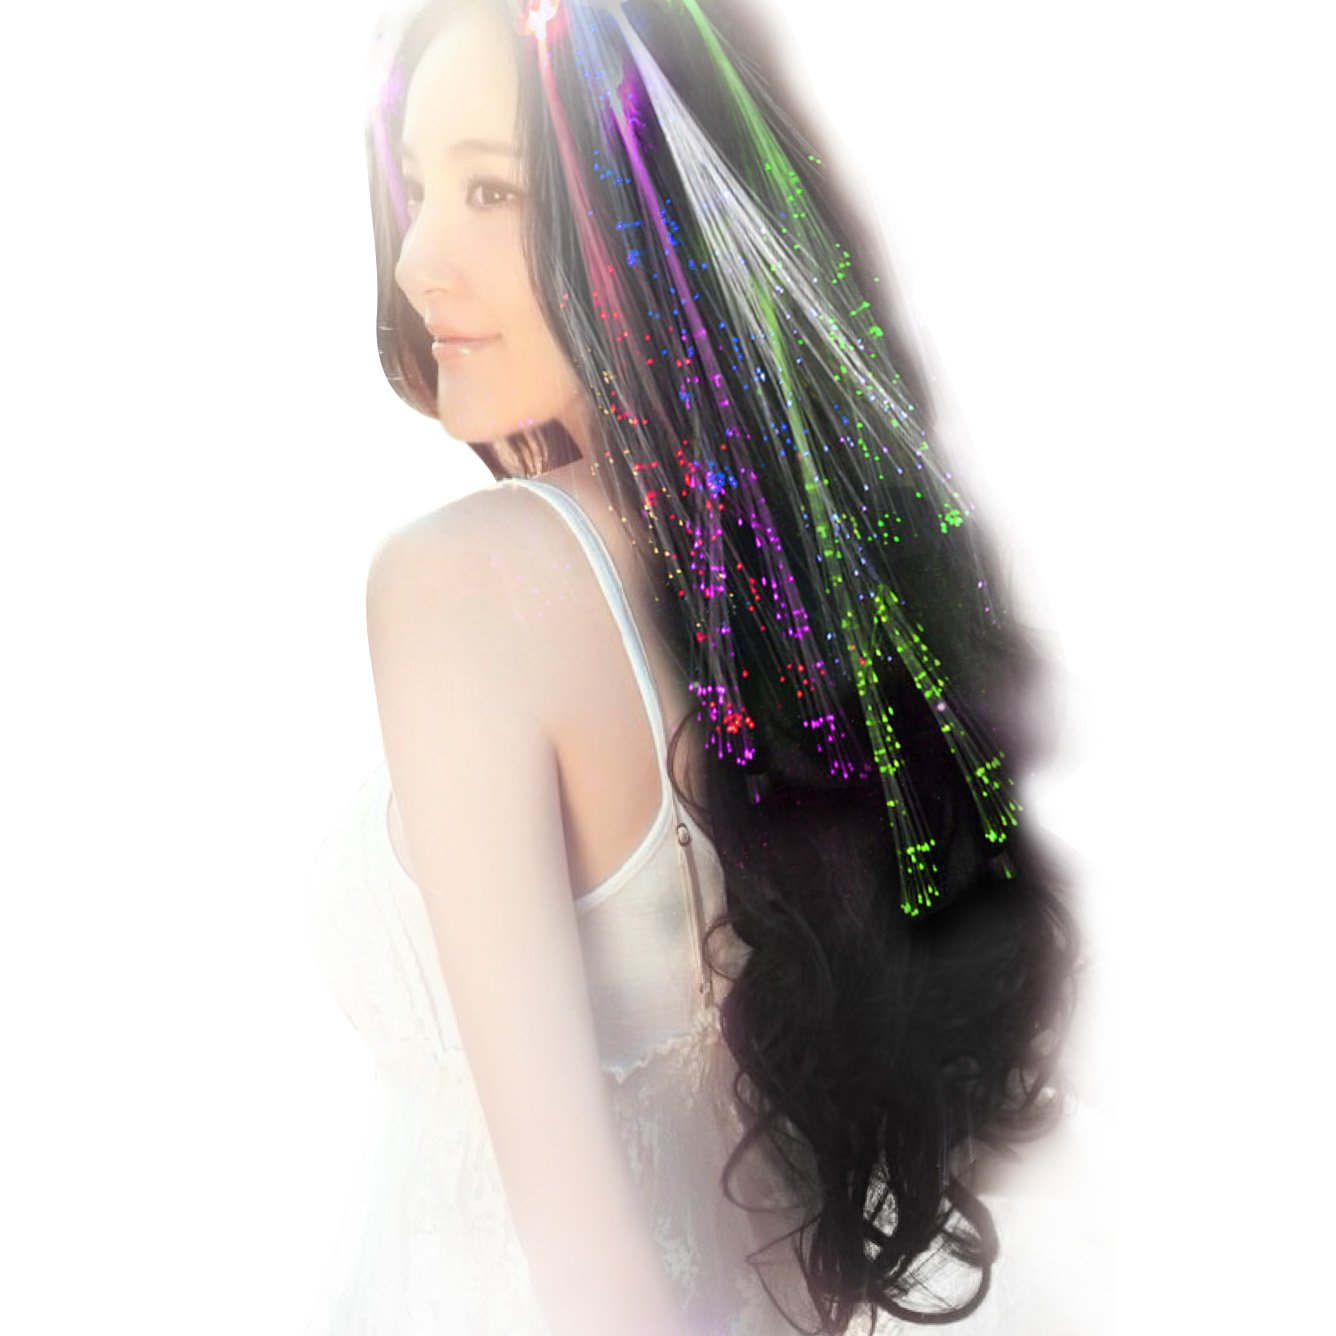 Acooe 10 Pack Led Multicolored Fiber Optic Lights Up Flashing Hair